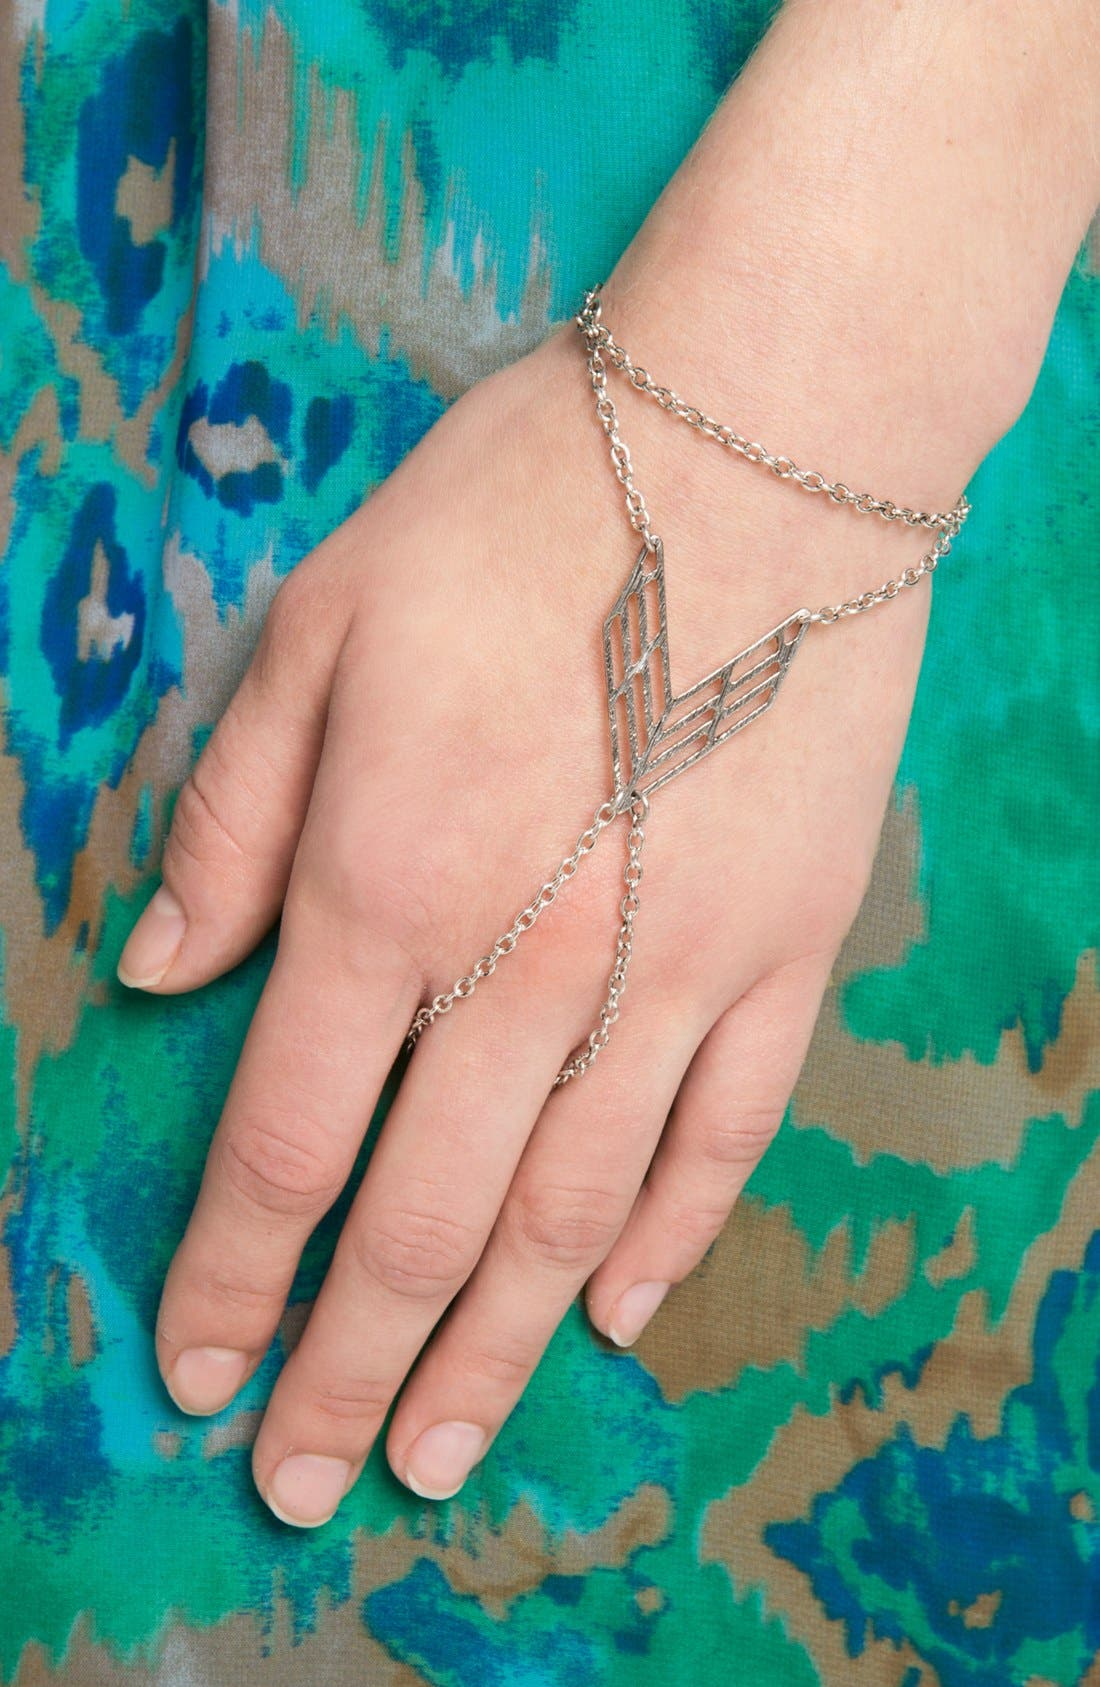 Alternate Image 1 Selected - Orion Chevron Hand Chain